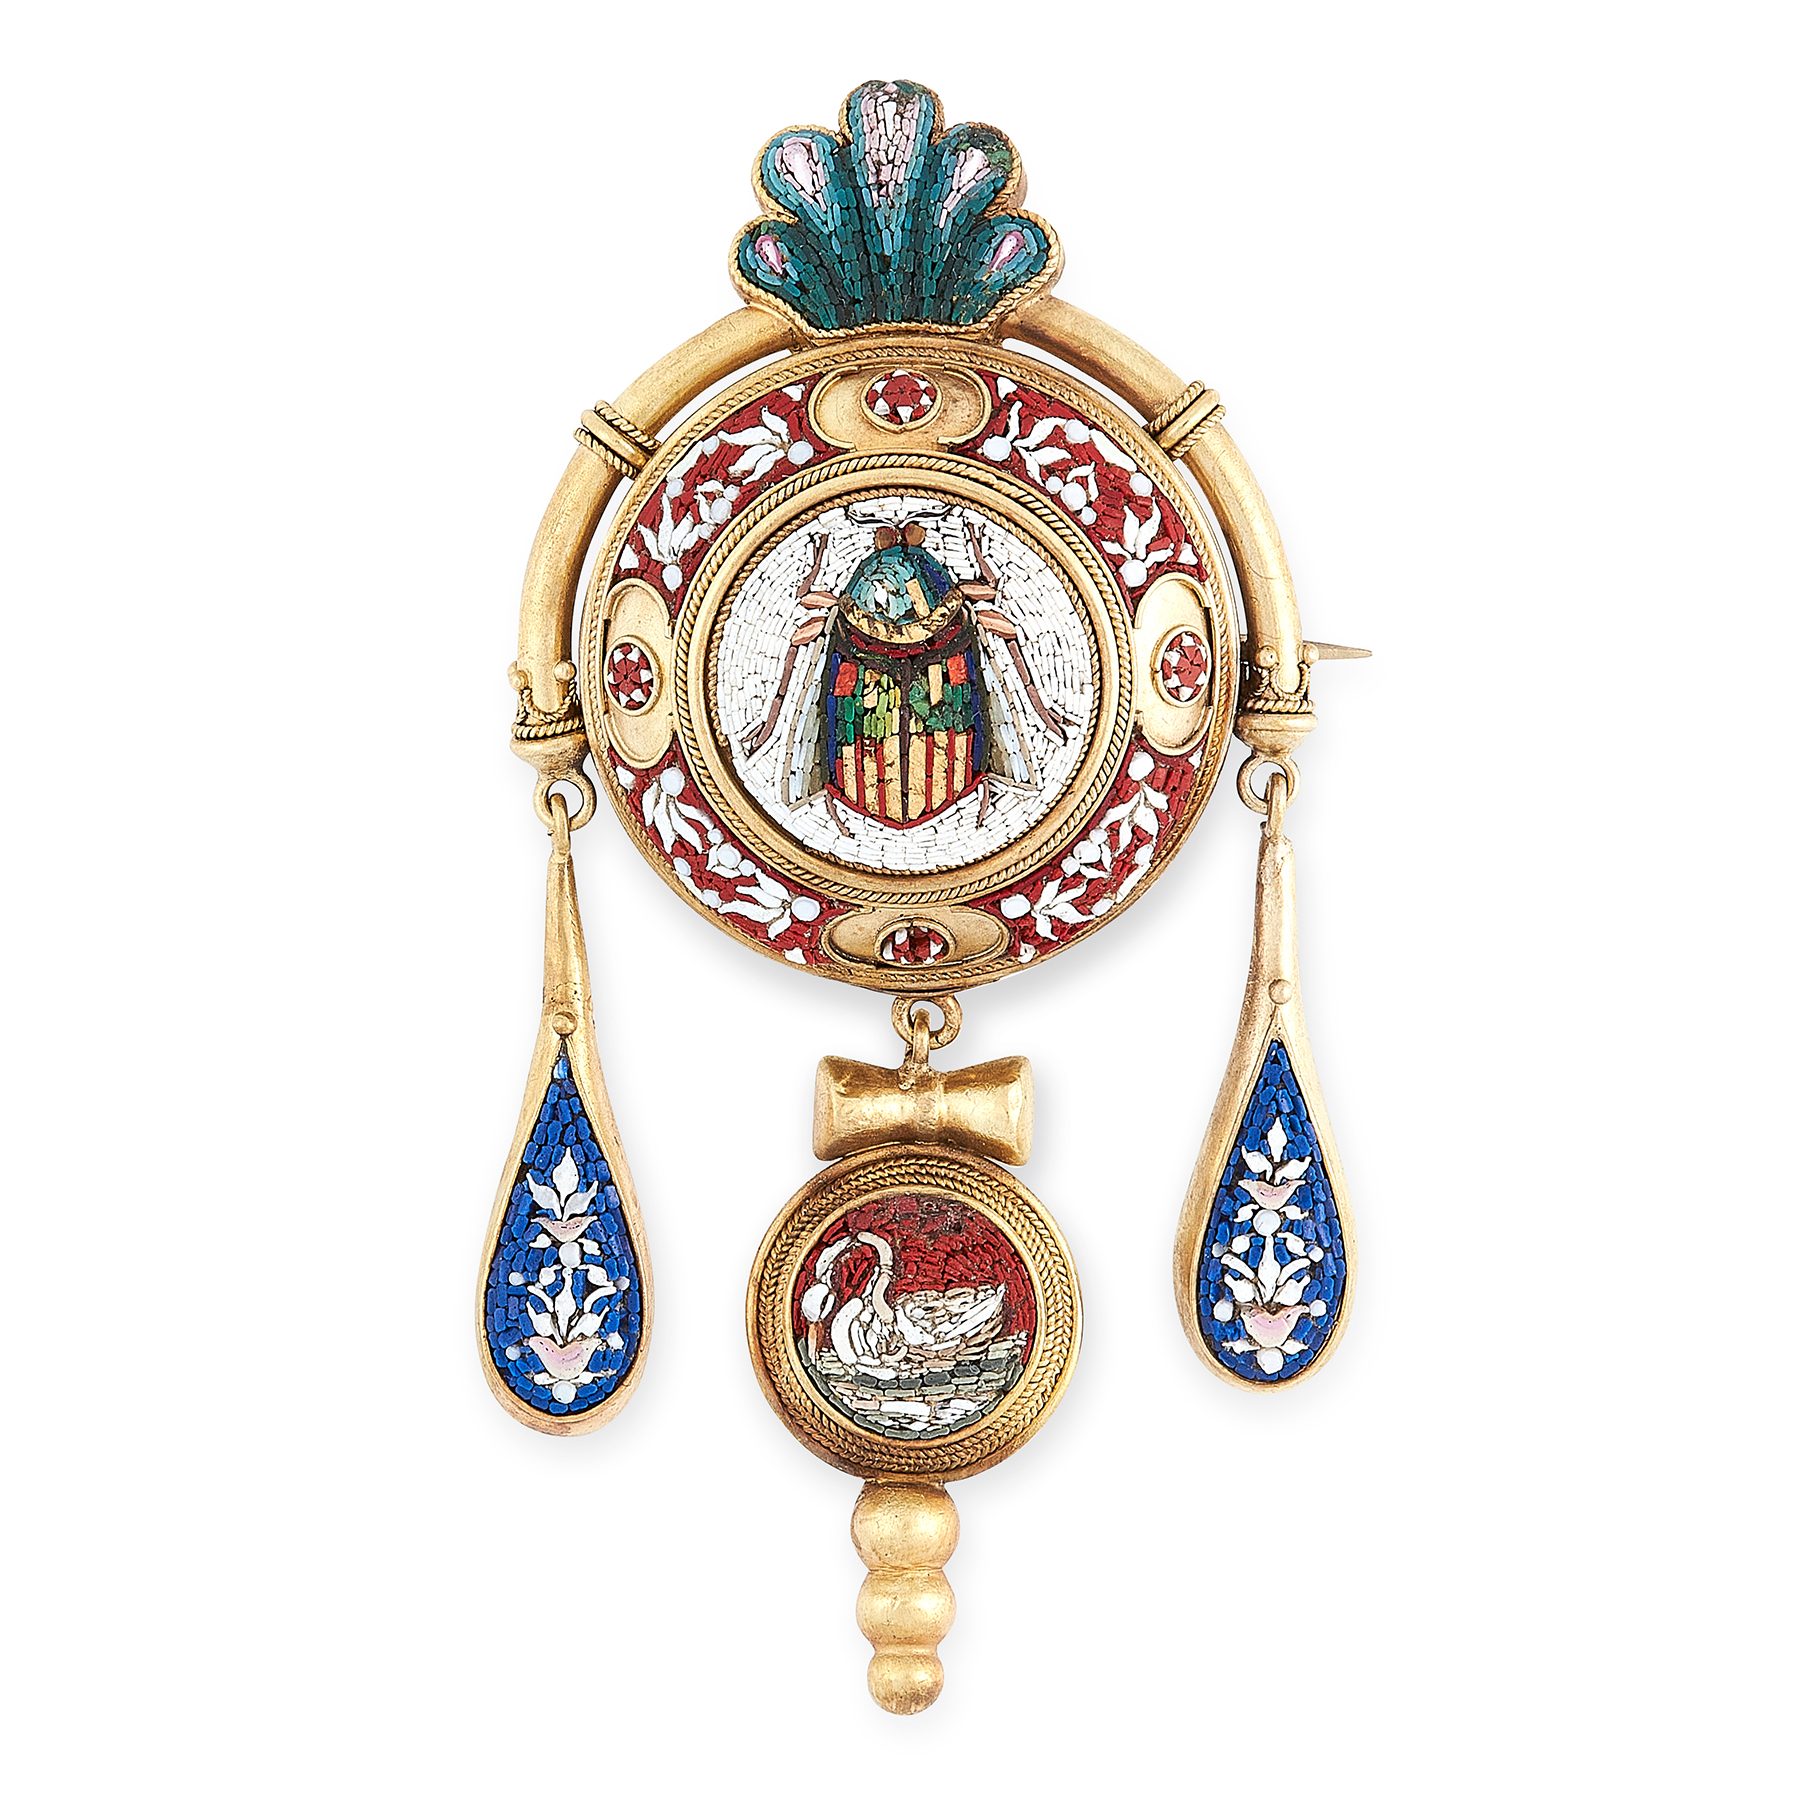 AN ANTIQUE MICROMOSAIC BROOCH, 19TH CENTURY in high carat yellow gold, the circular body with